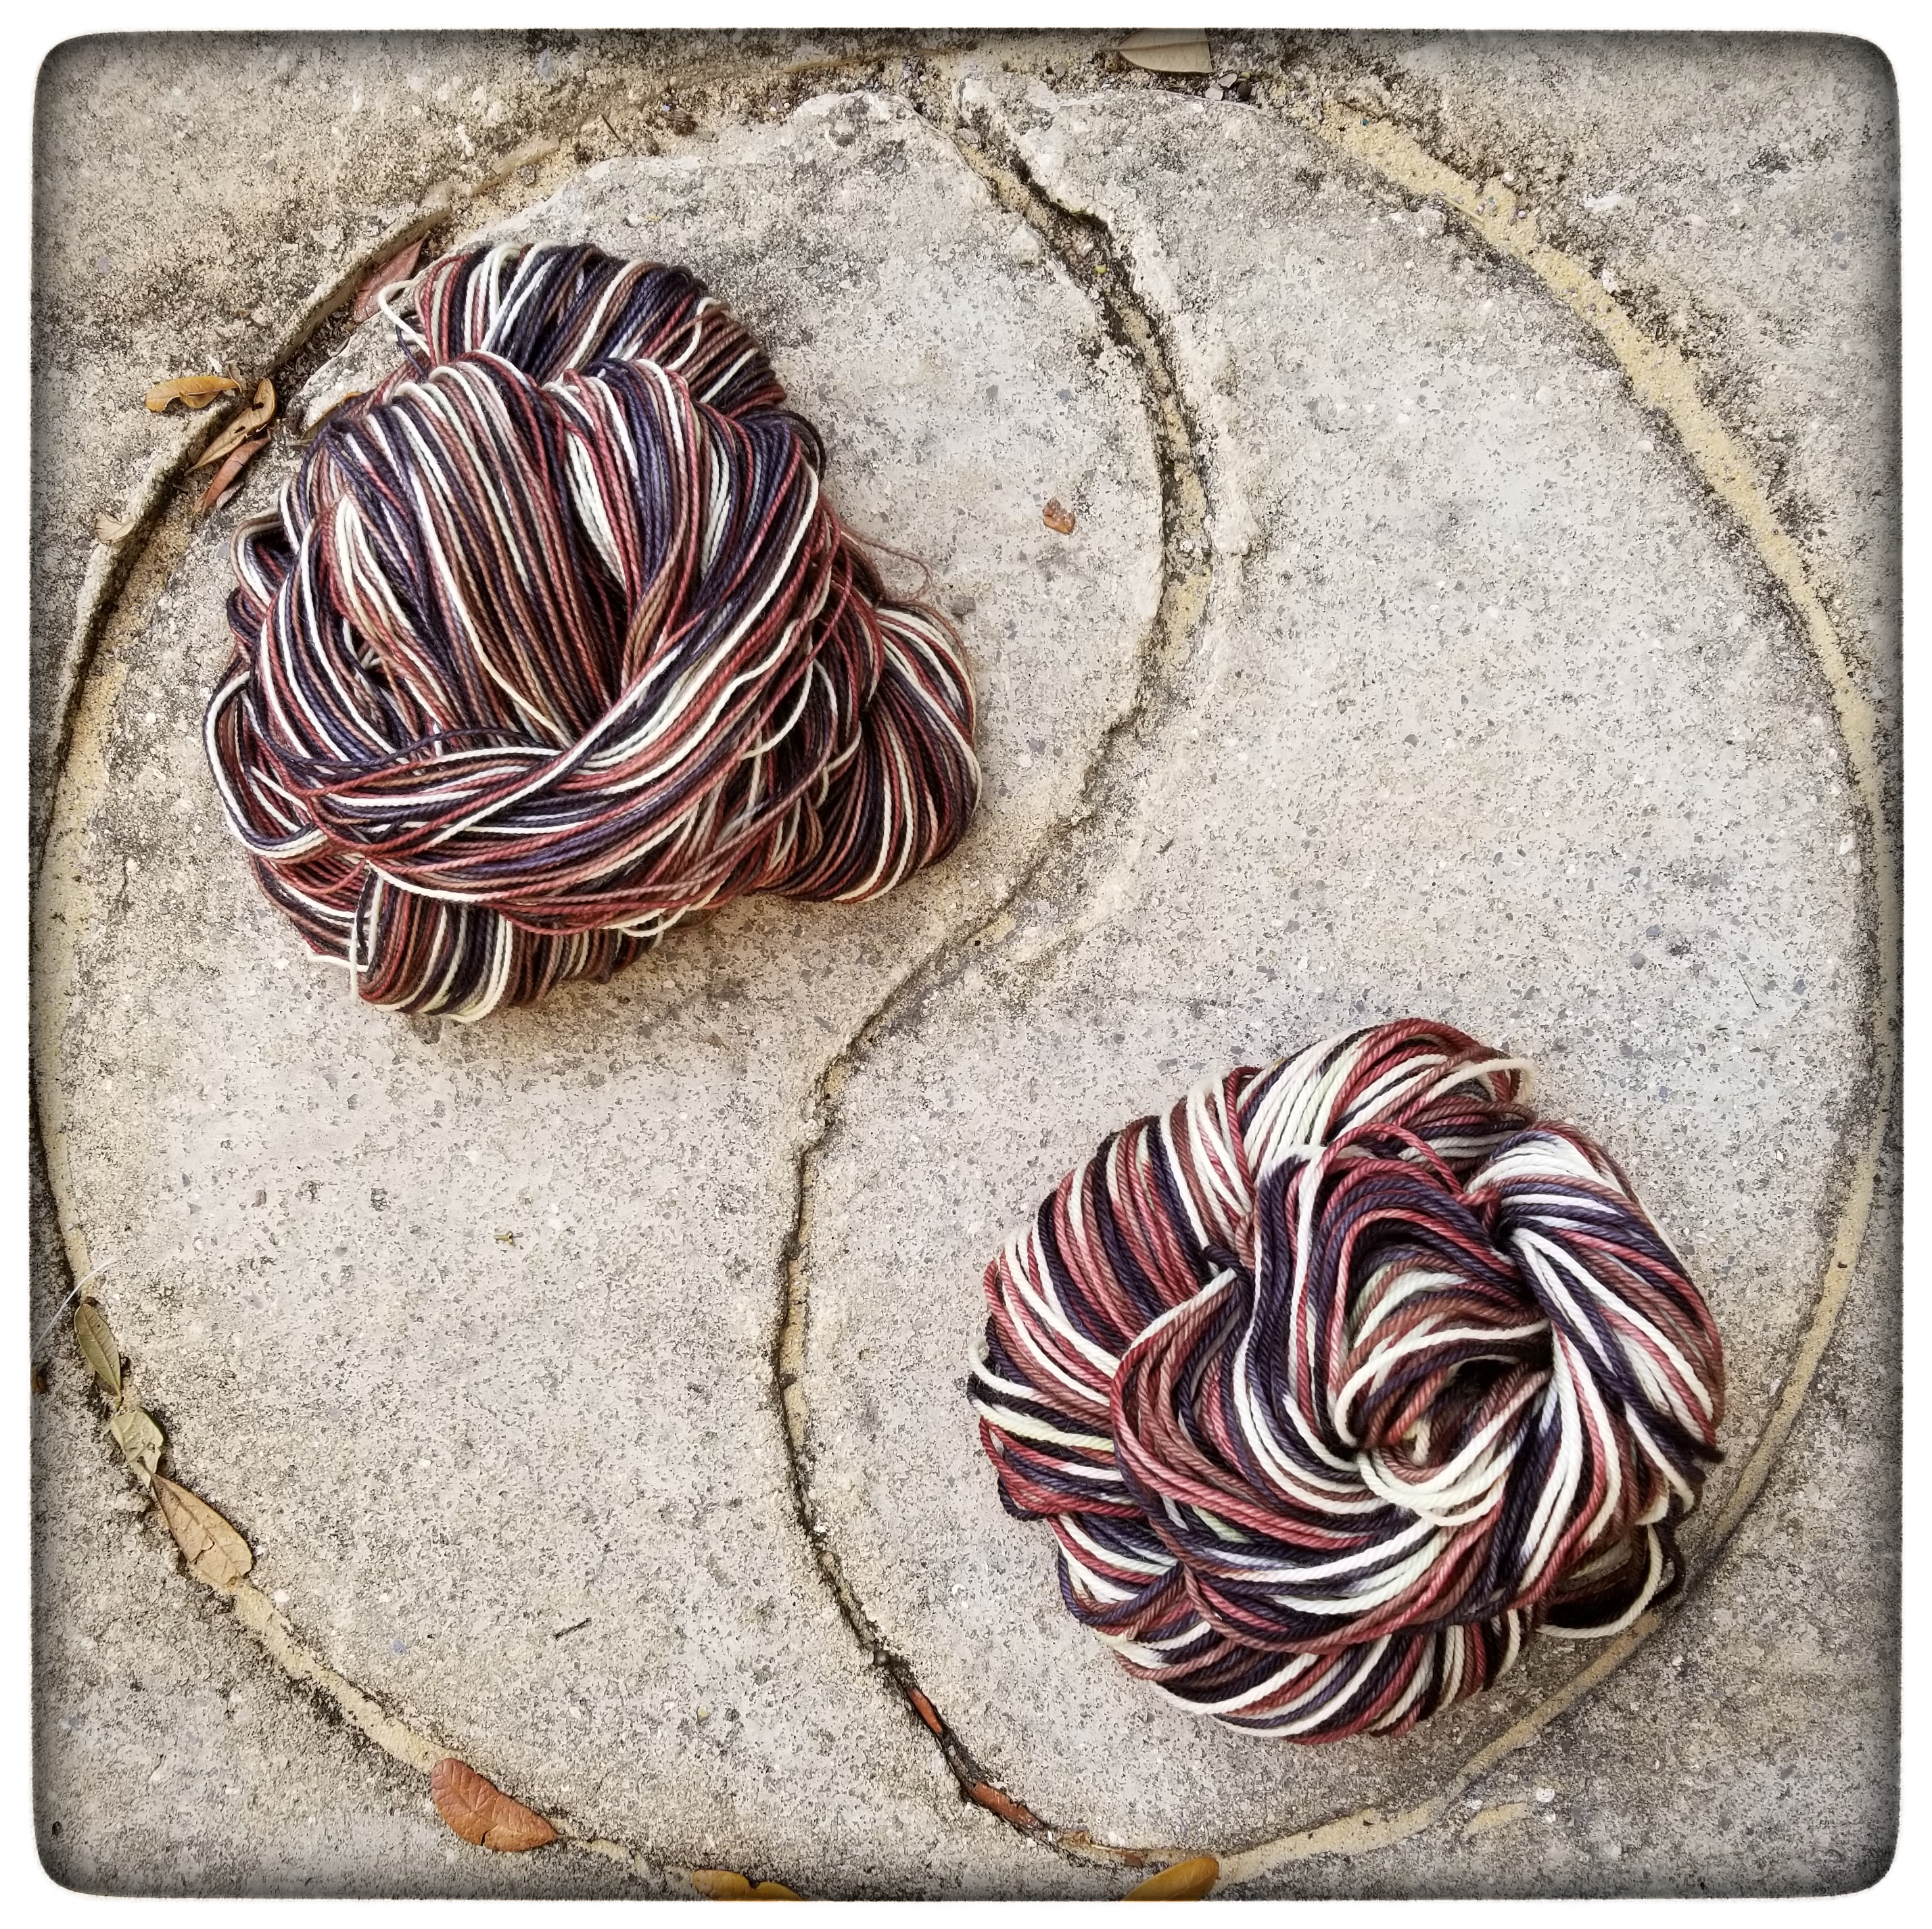 January 2018 Yarn Club: Man Winding Yarn